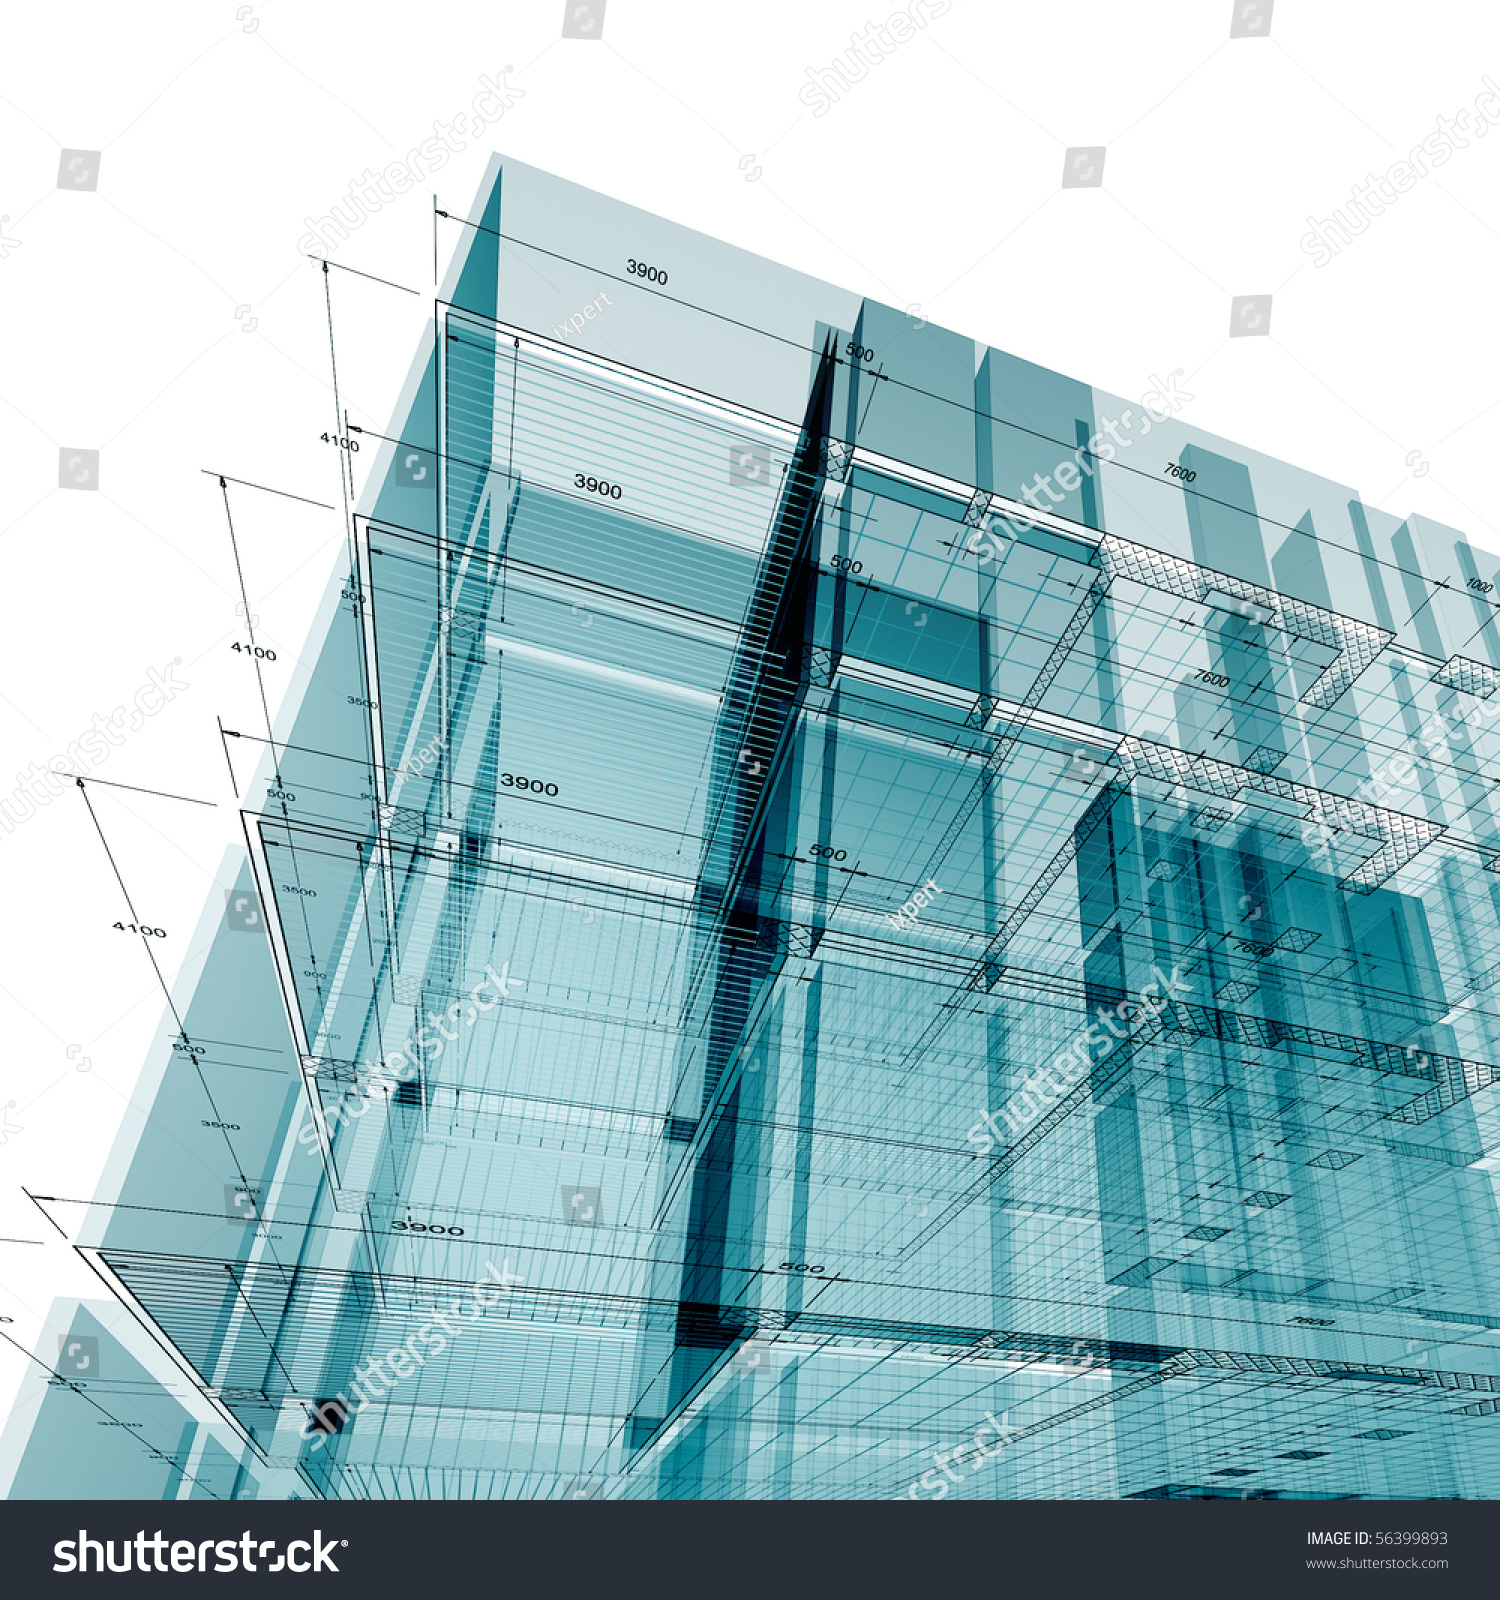 Building engineering my personal concept architectural for Architectural engineering concepts